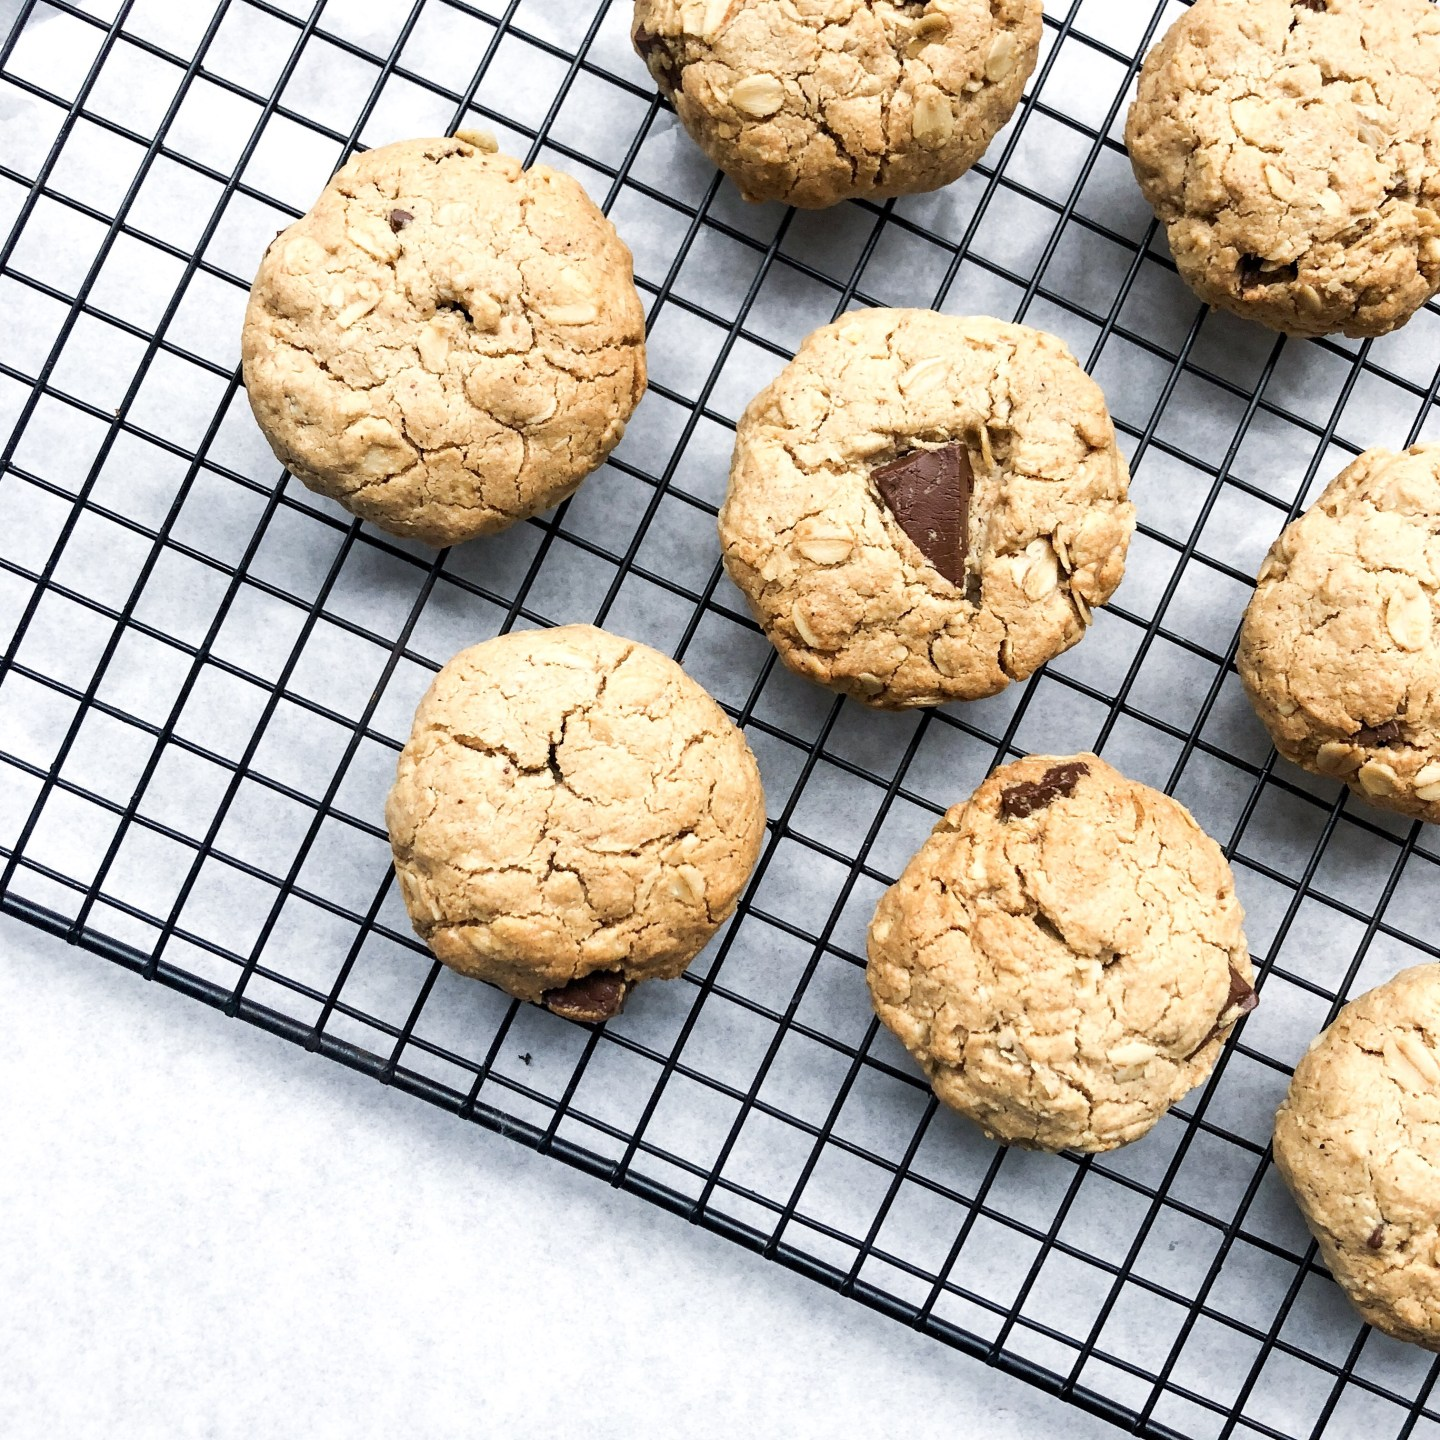 Salted Chocolate Oat Cookies (vegan friendly)